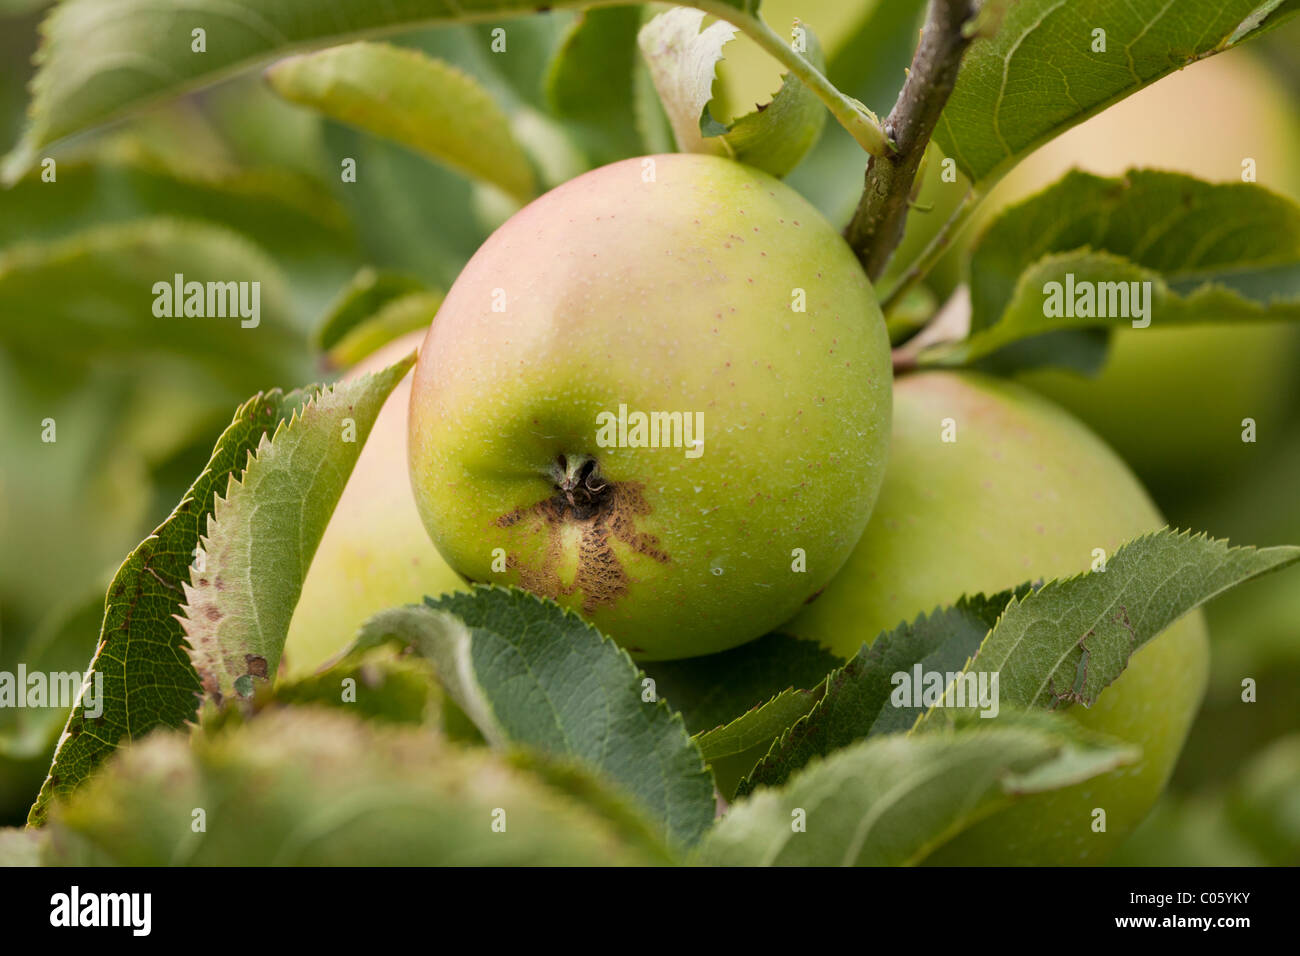 A green apple cluster on a tree branch  A Crispin apple with a